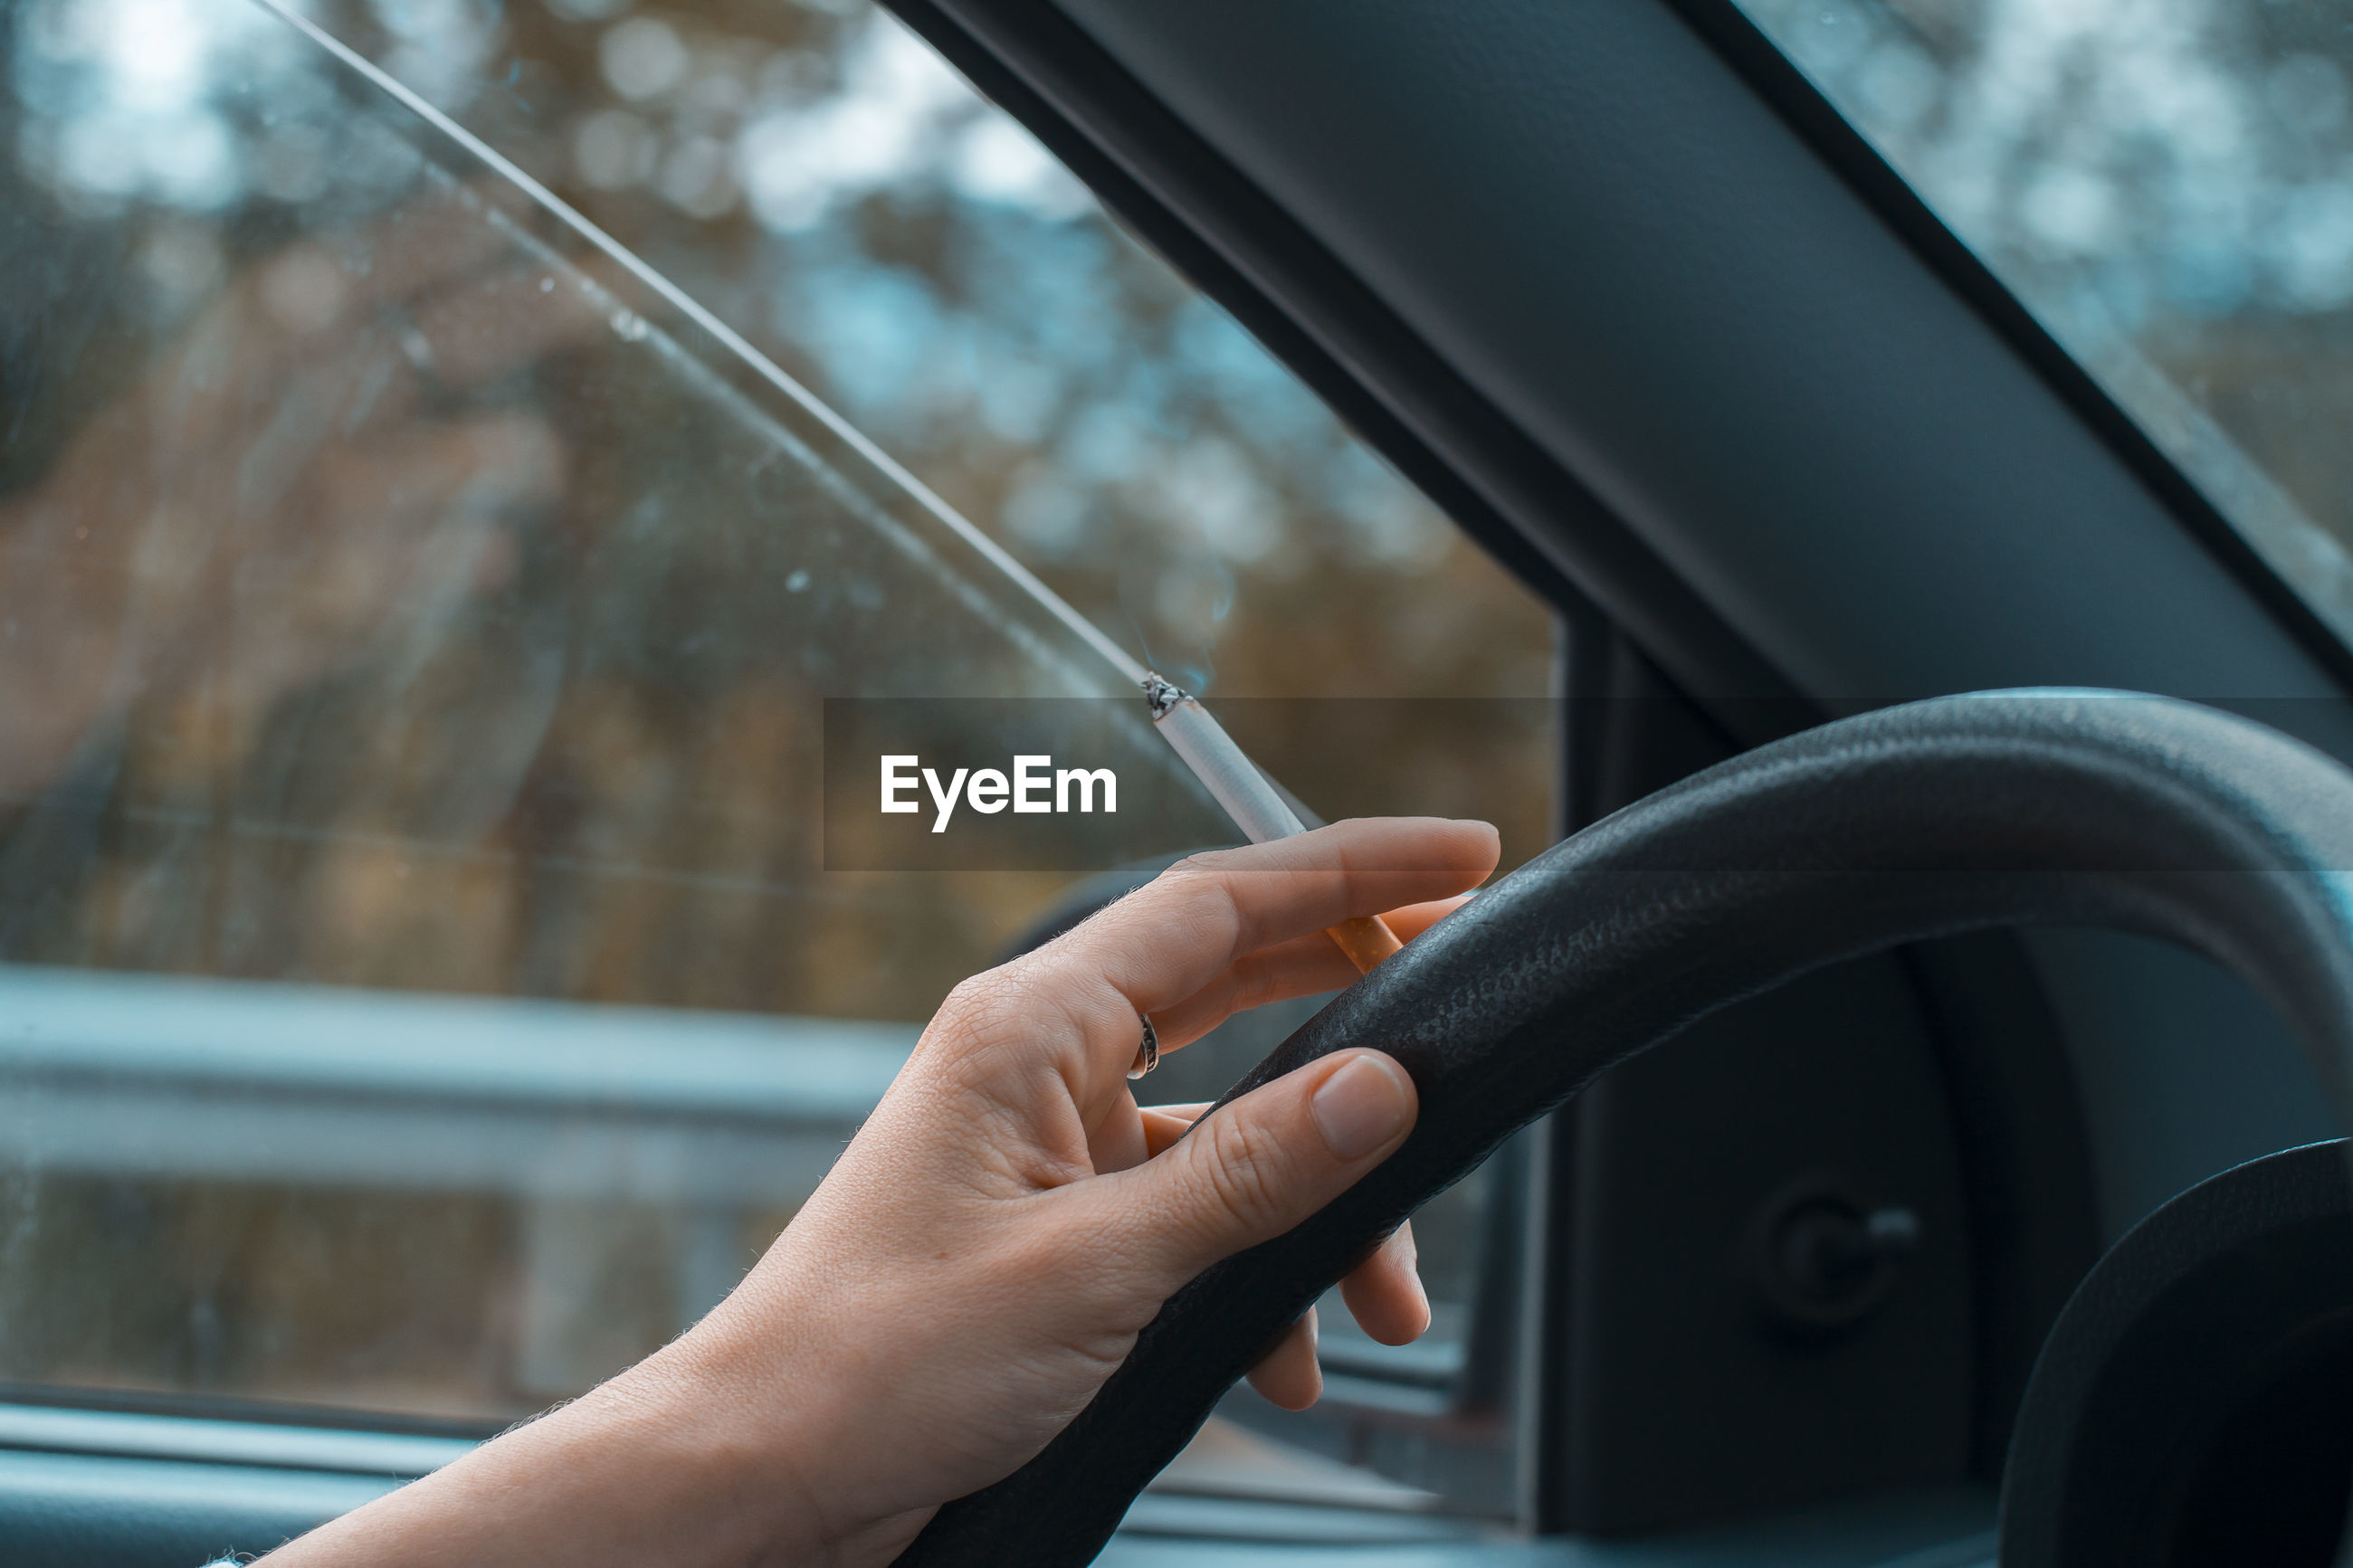 Cropped hand of person holding cigarette while driving car